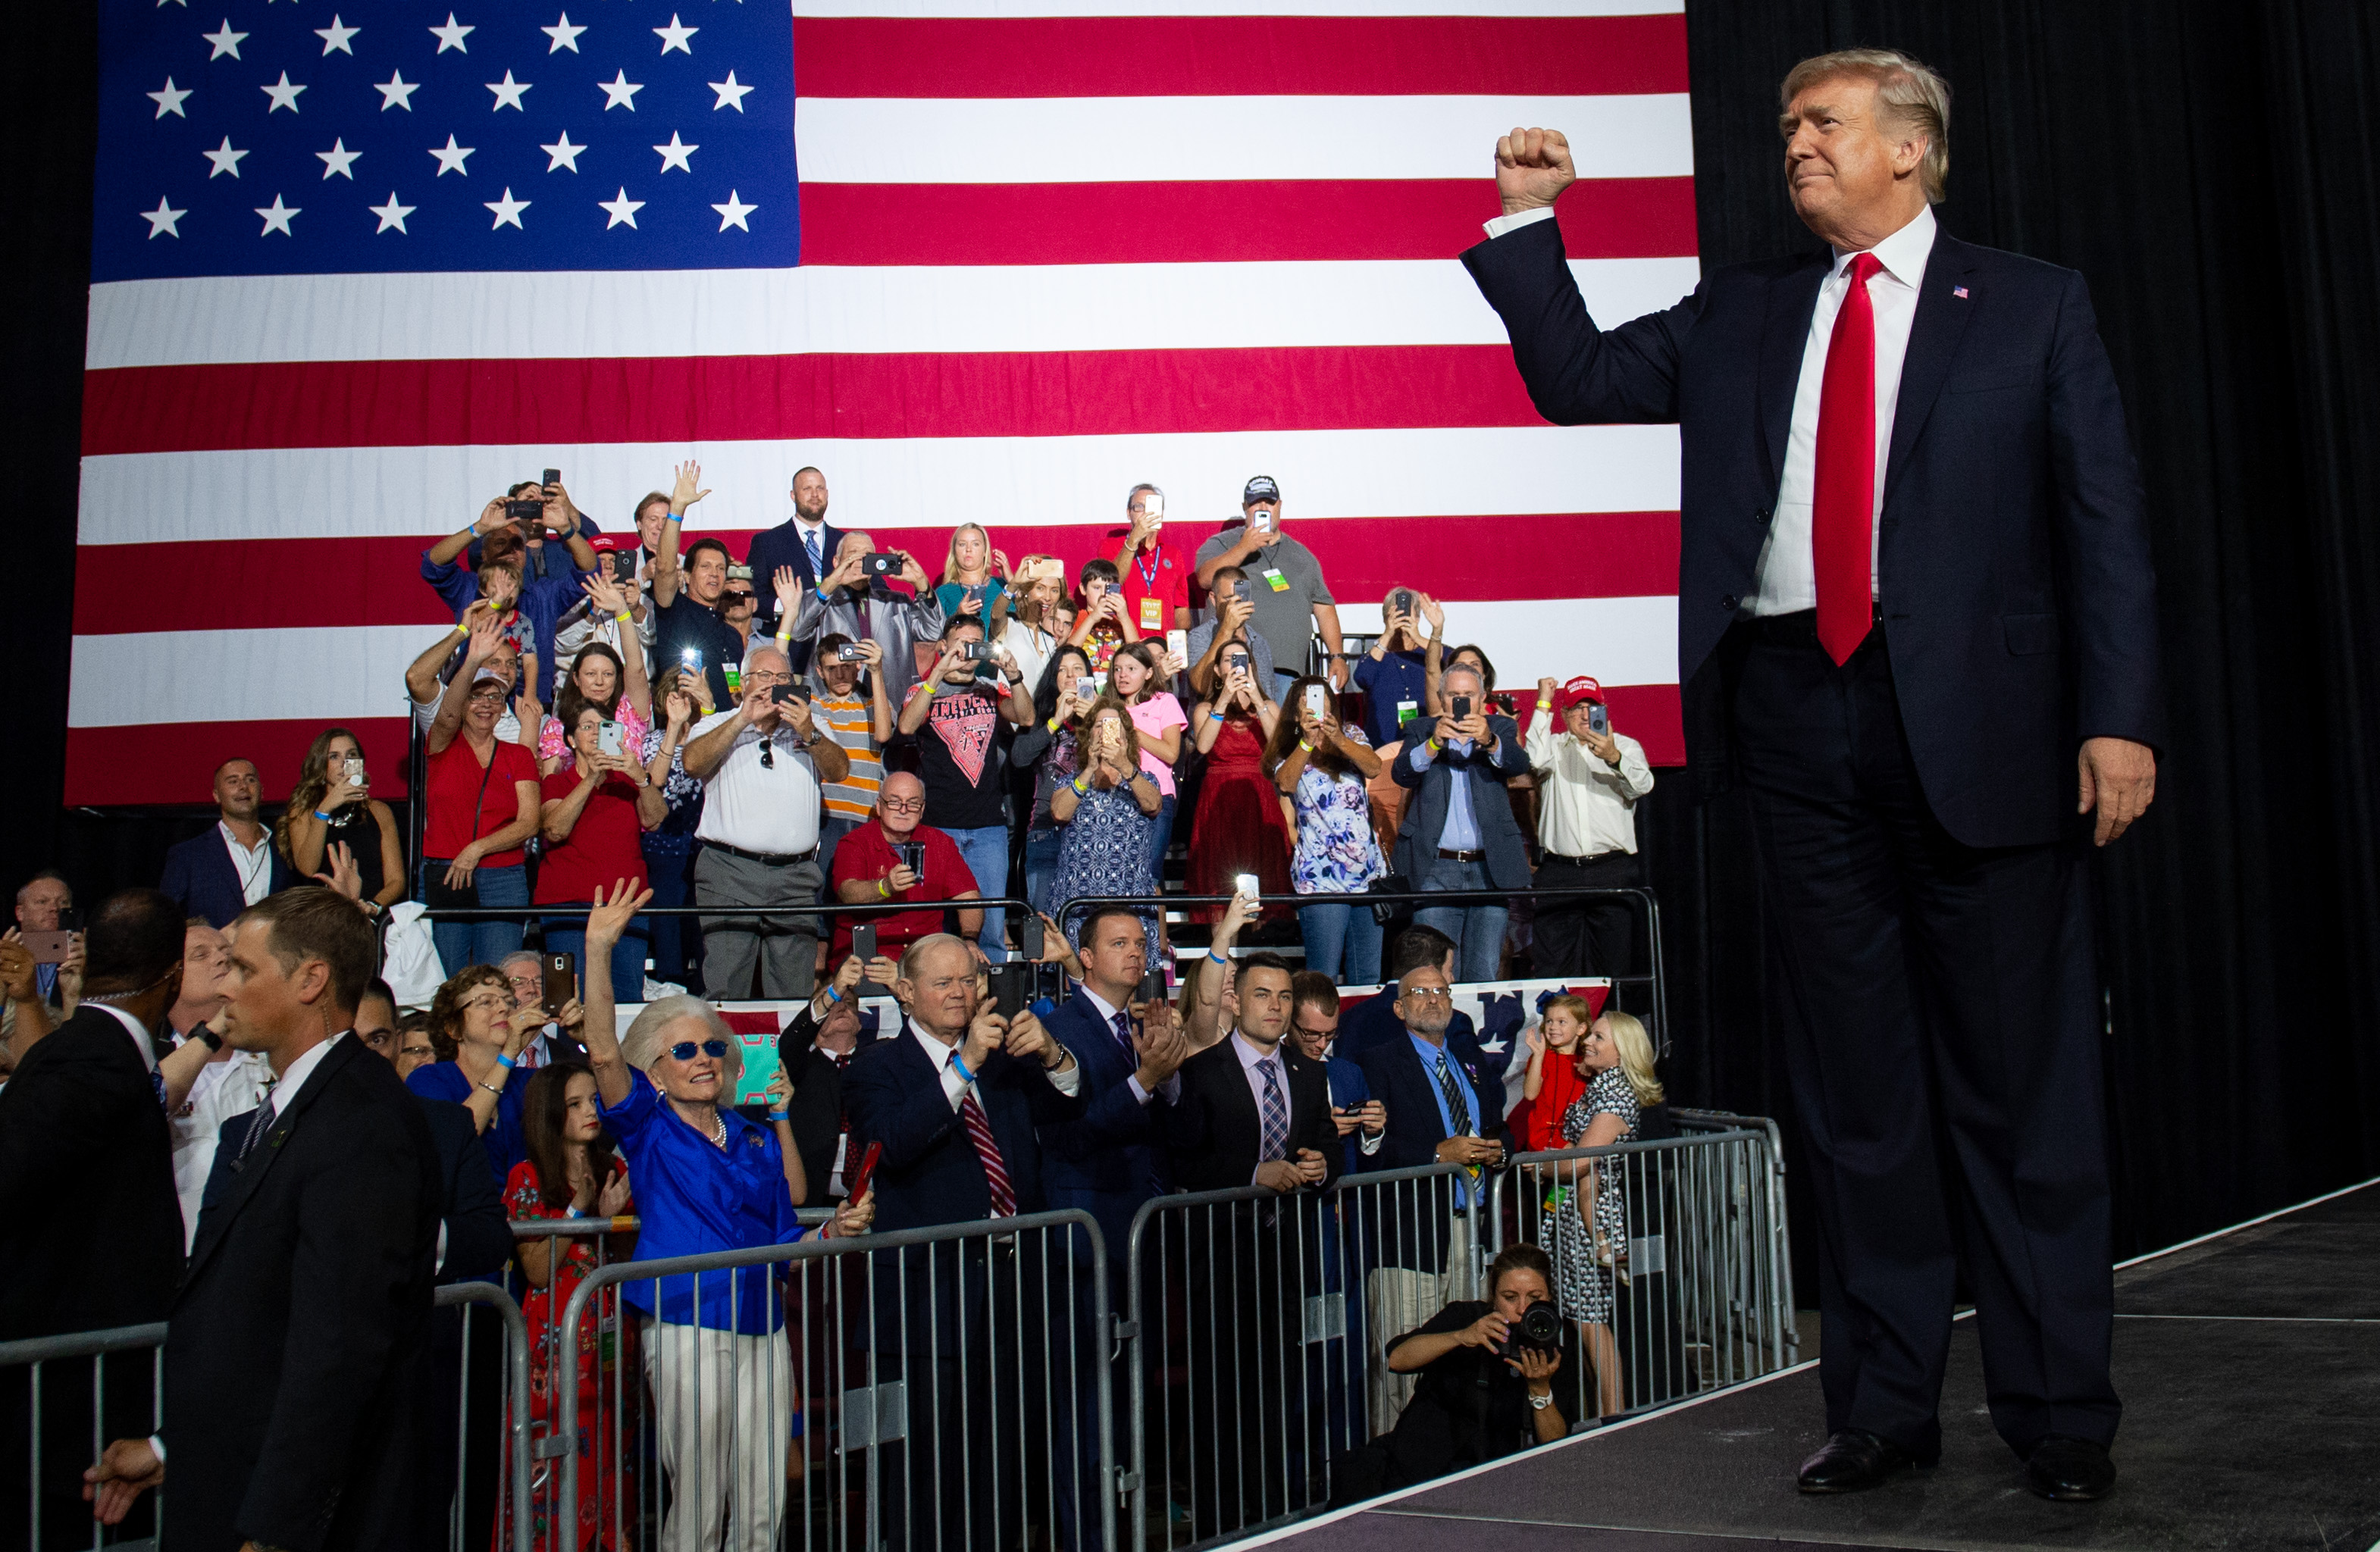 Trump greets the crowd during a campaign rally at the Florida State Fairgrounds Expo Hall in Tampa, Florida, on July 31